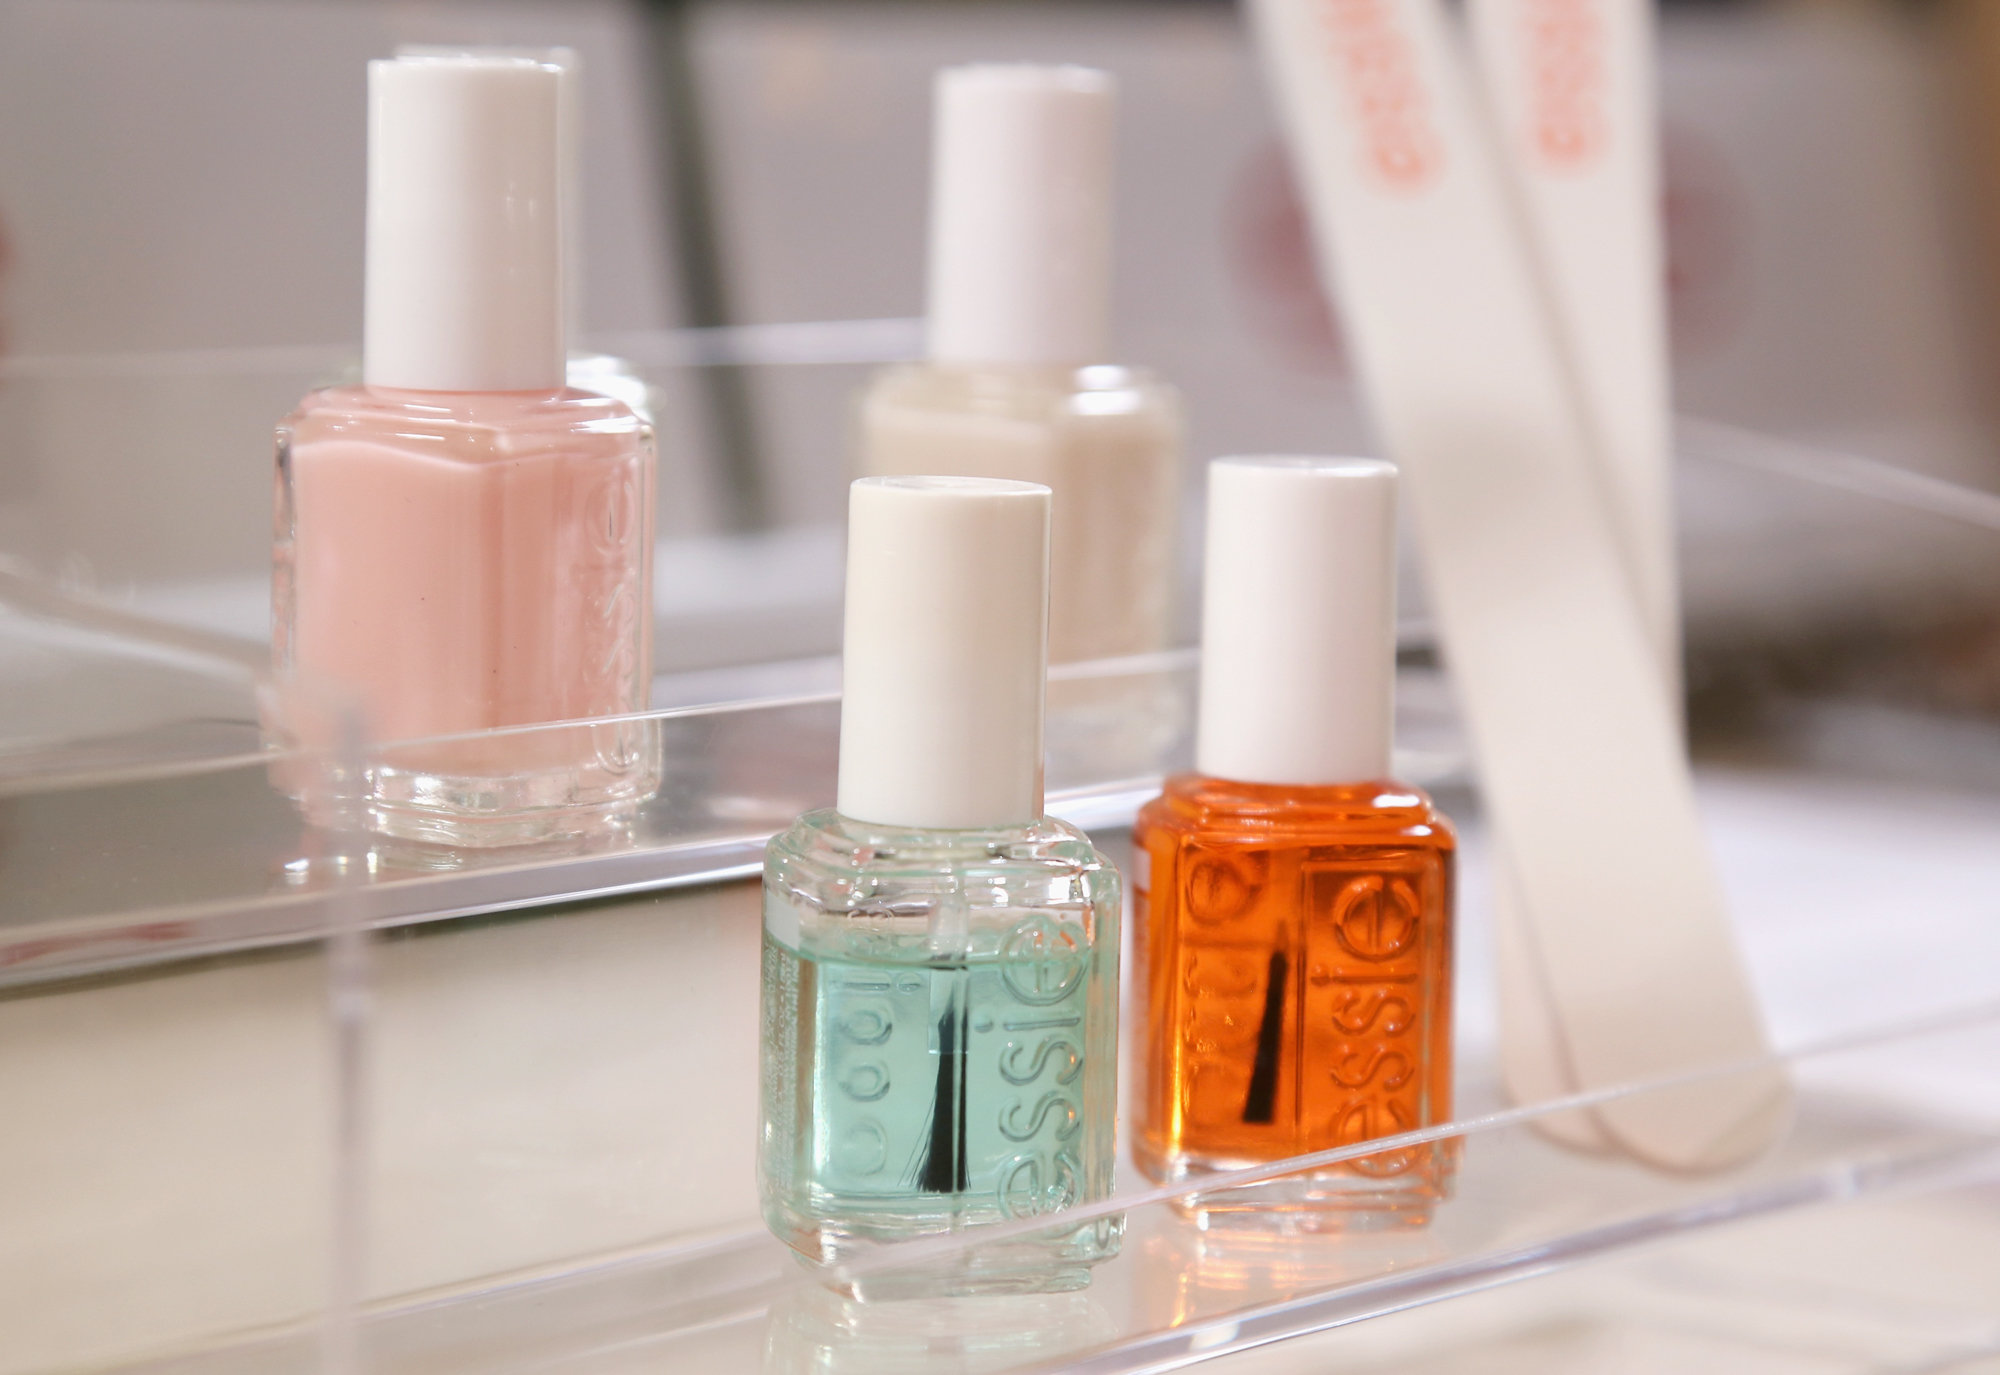 Amazing Nail Polish And Wudu Thick Removing Gel Nail Polish Regular White Nail Polish Ideas Nail Art Using Water Old Light Pink Opaque Nail Polish SoftOpi Nail Polish Blue Essie\u0026#39;s 10 Best Selling Shades | InStyle